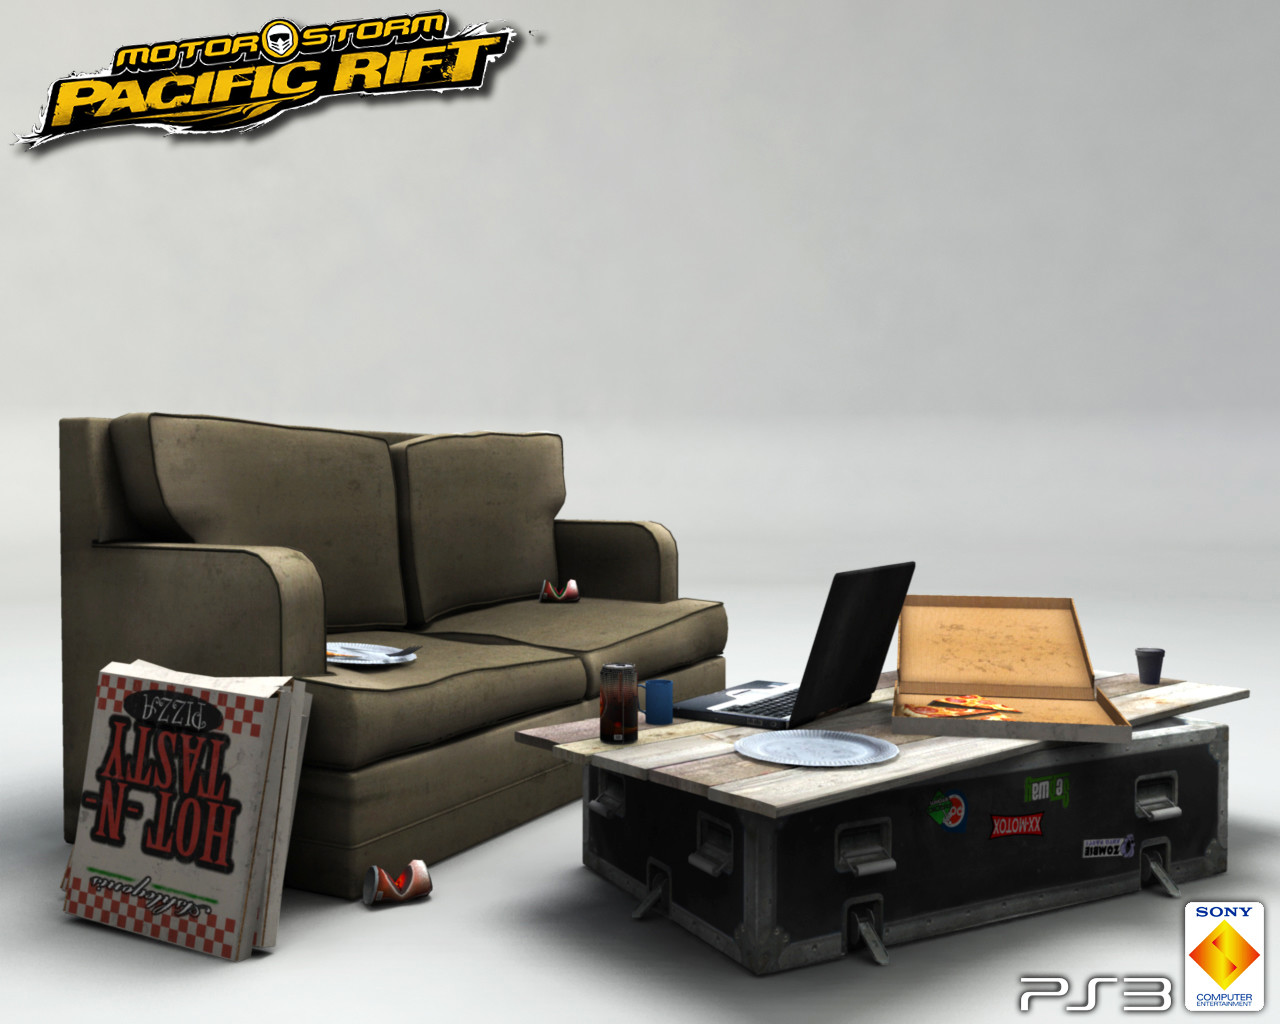 Dean ashley hr motorstorm2 props sofa 2